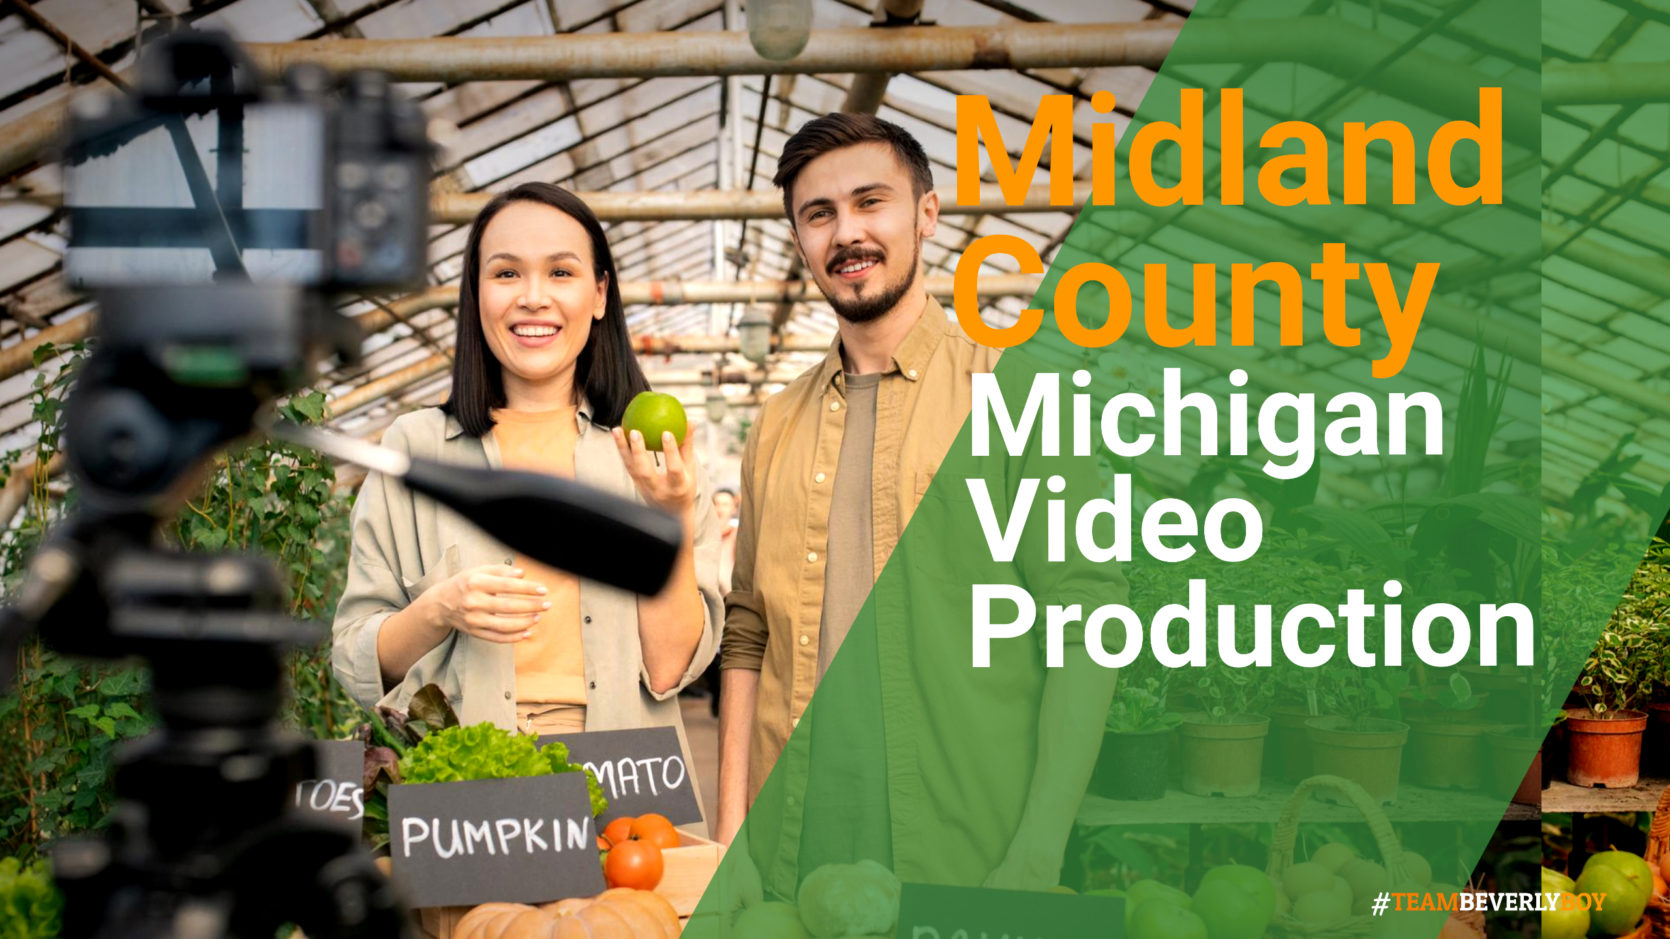 Midland County MI Video Production